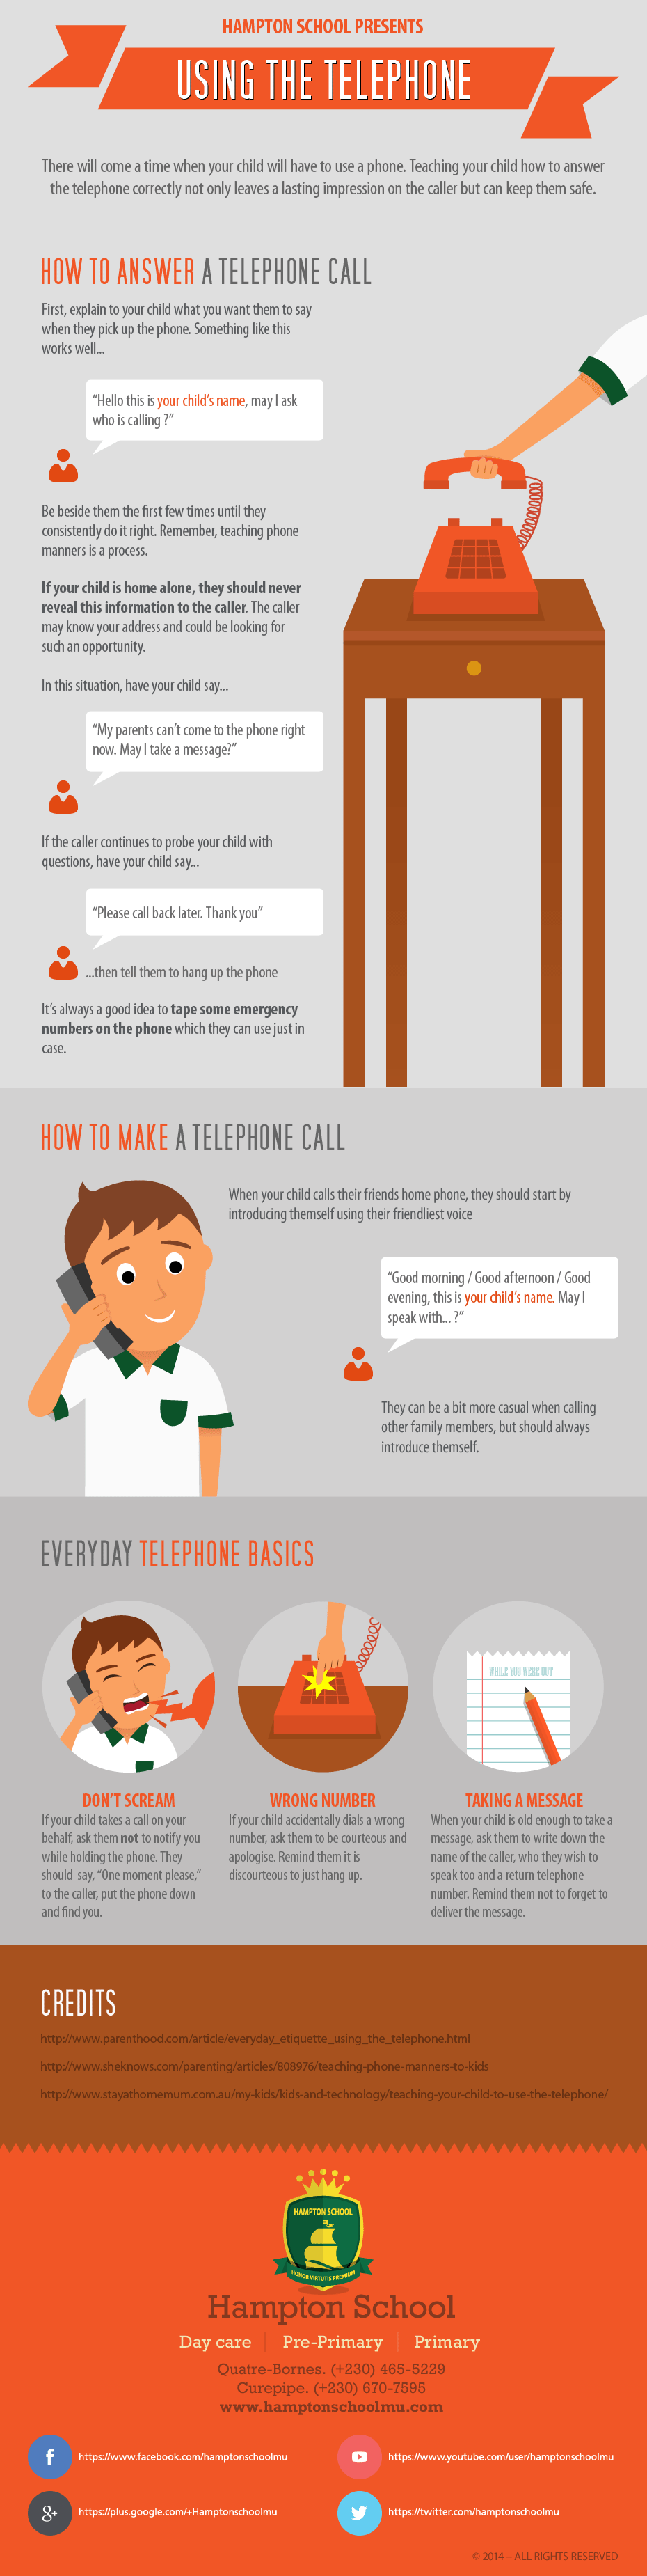 Telephone Safety and Etiquette for Kids [Infographic]